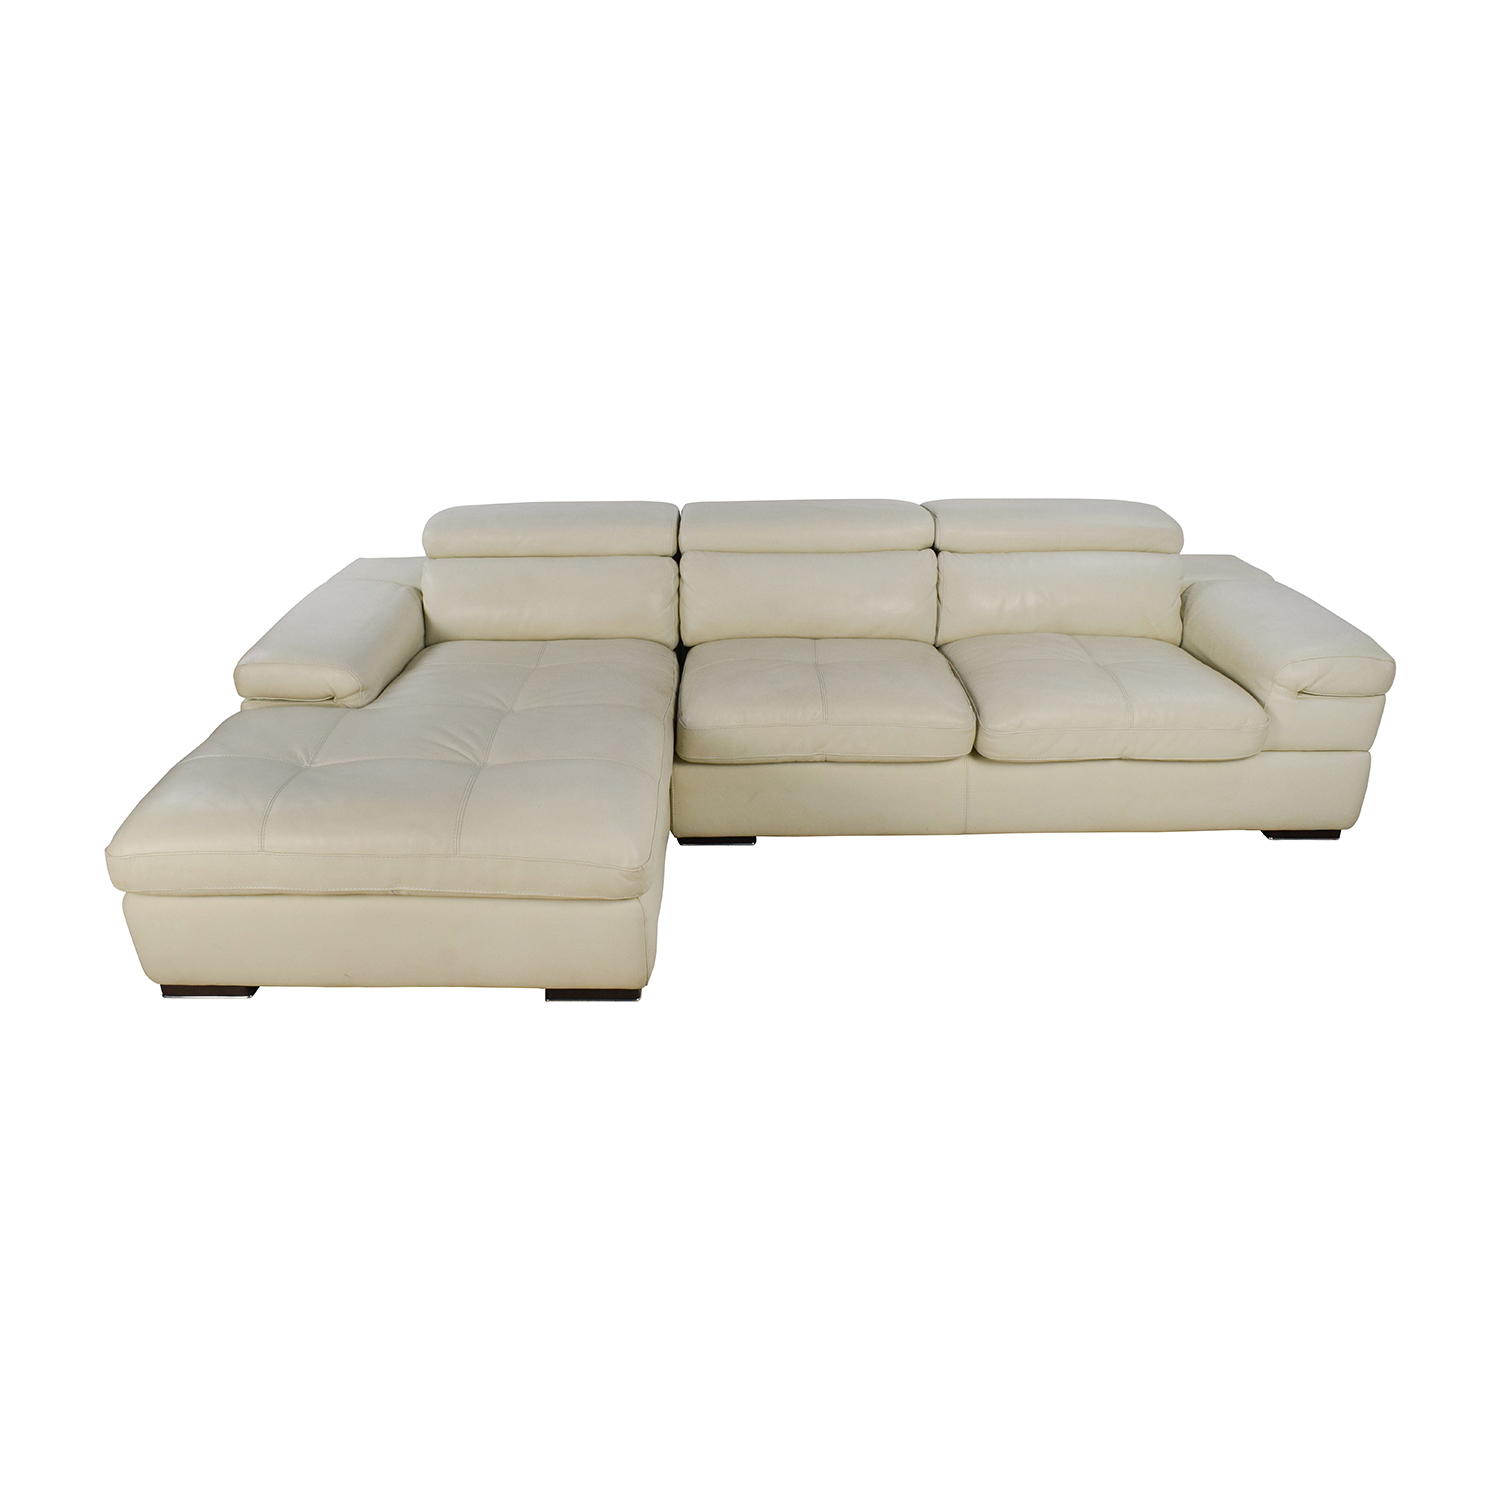 L-Shaped Cream Leather Sectional Sofa price